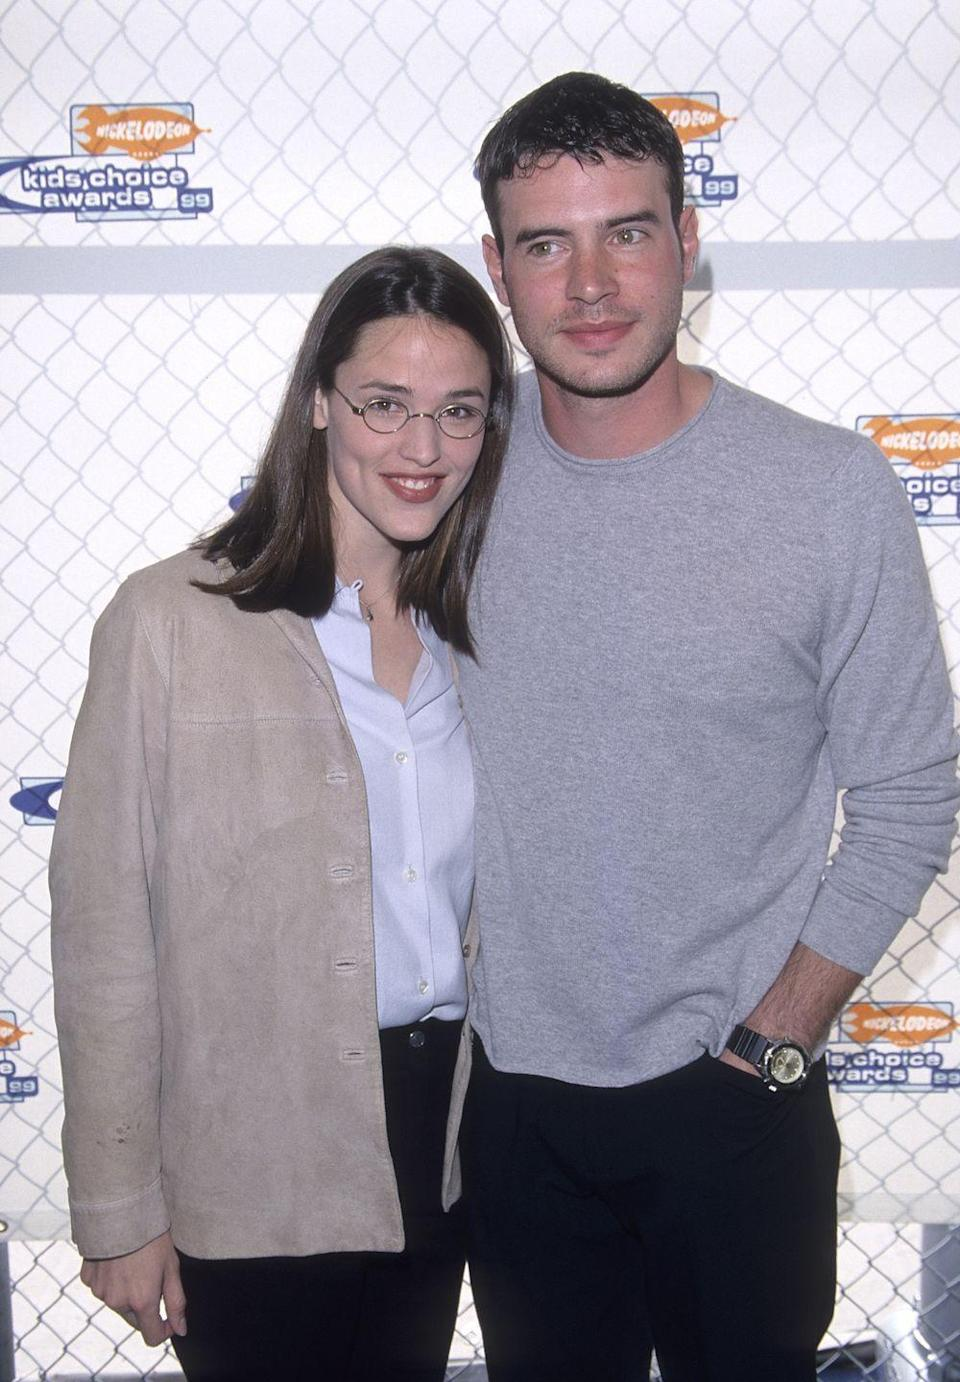 <p>Jennifer Garner and her then-boyfriend (who she'd later marry and divorce) Scott Foley attended the Nickelodeon Kids Choice Awards following meeting on the set of the TV show <em>Felicity</em>. </p>